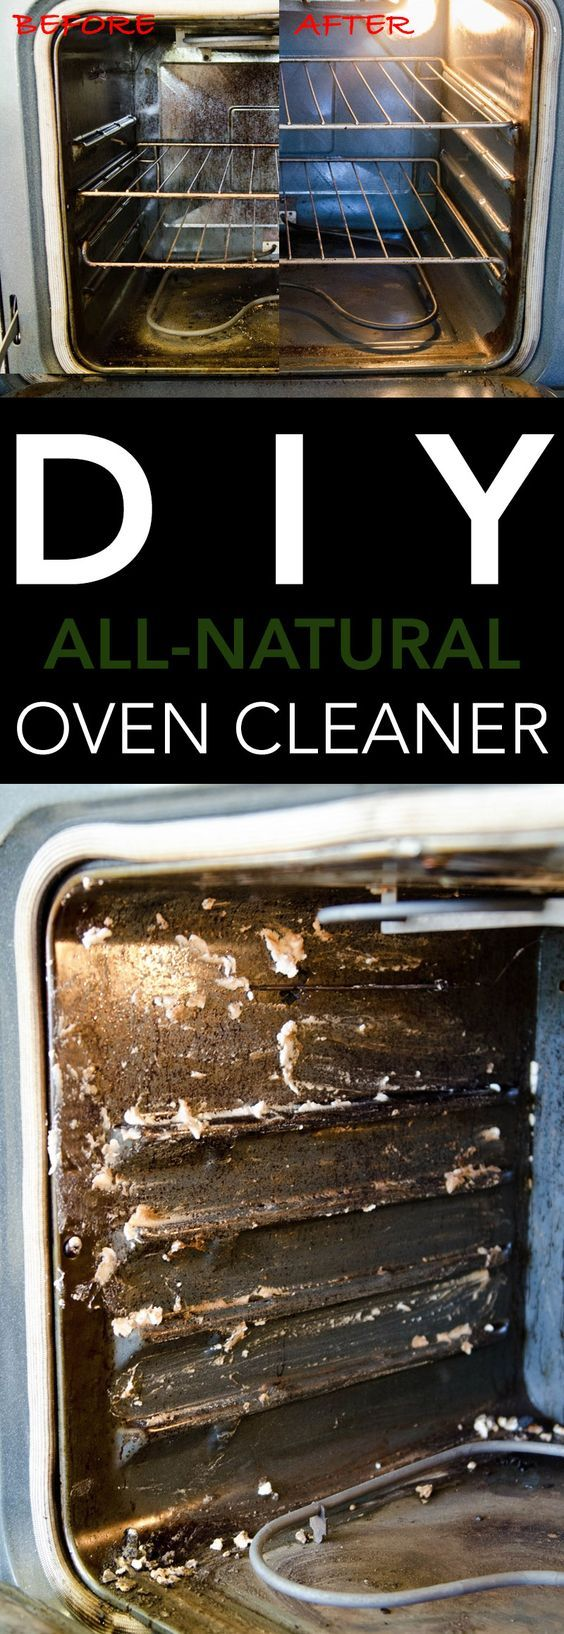 easy off oven cleaner how to use